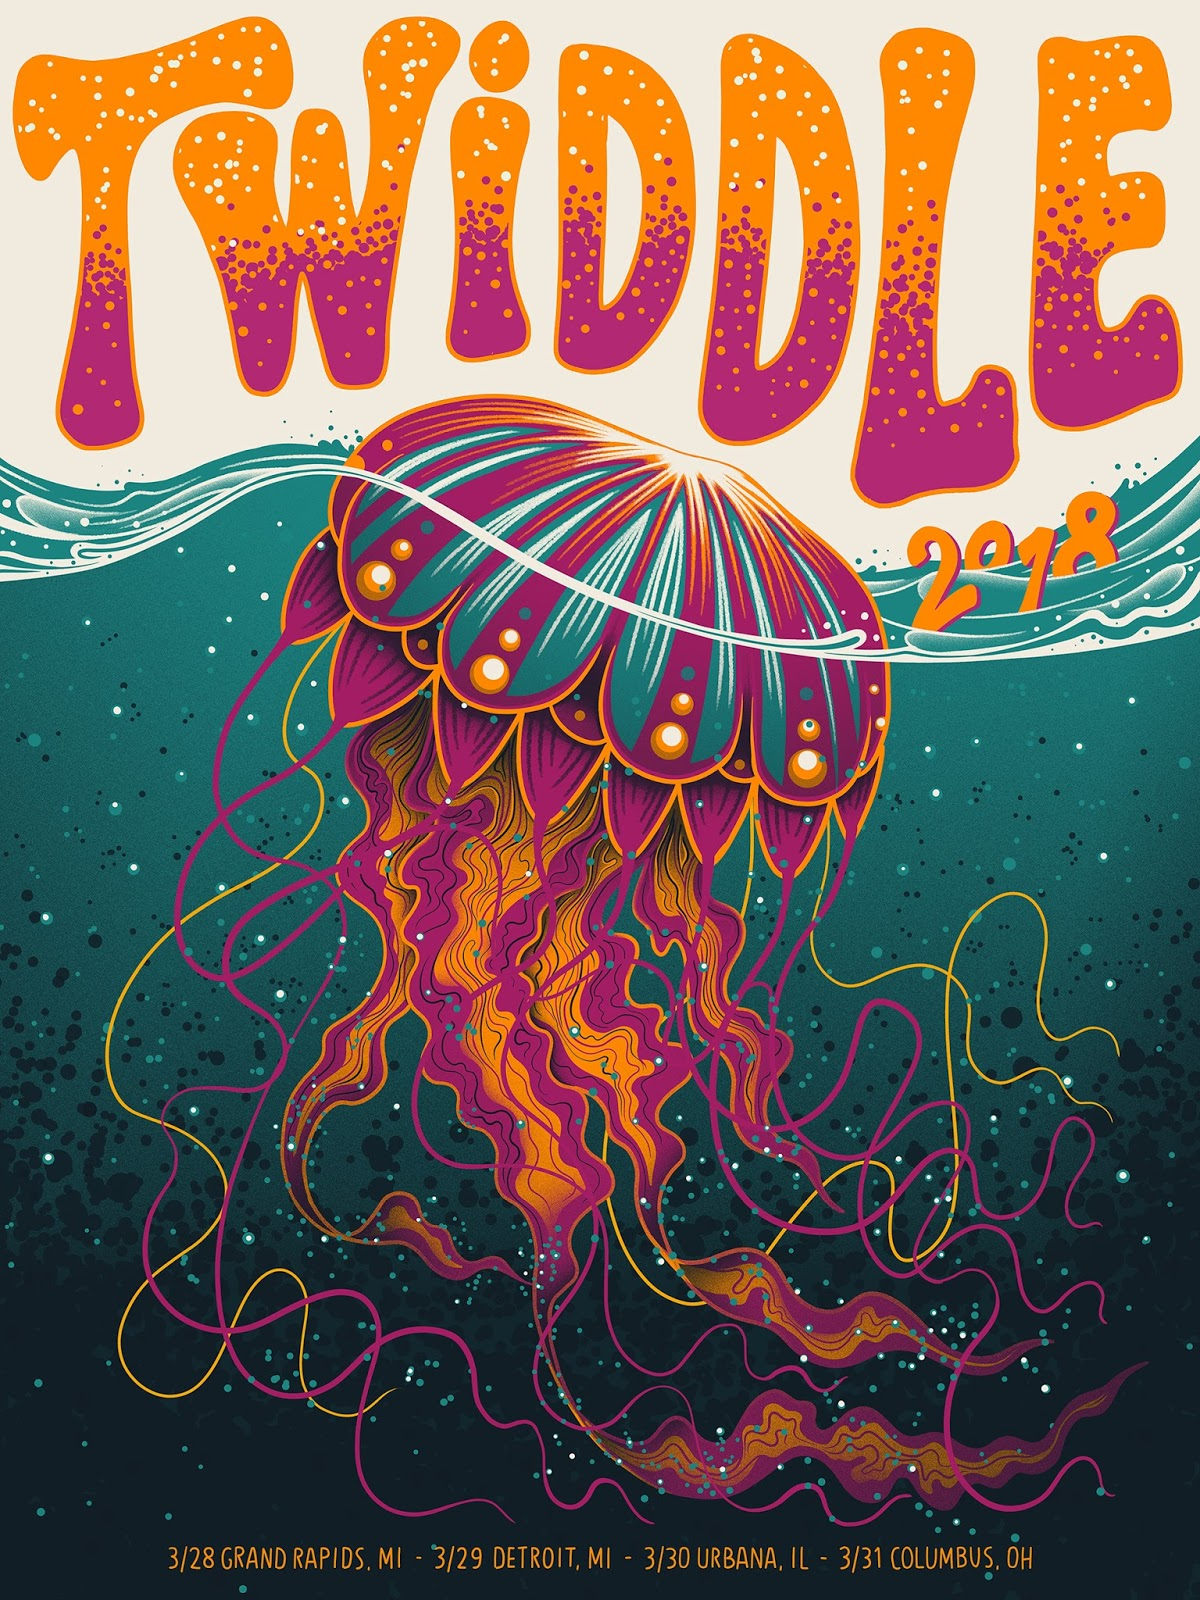 Arno kiss twiddle midwest tour poster release